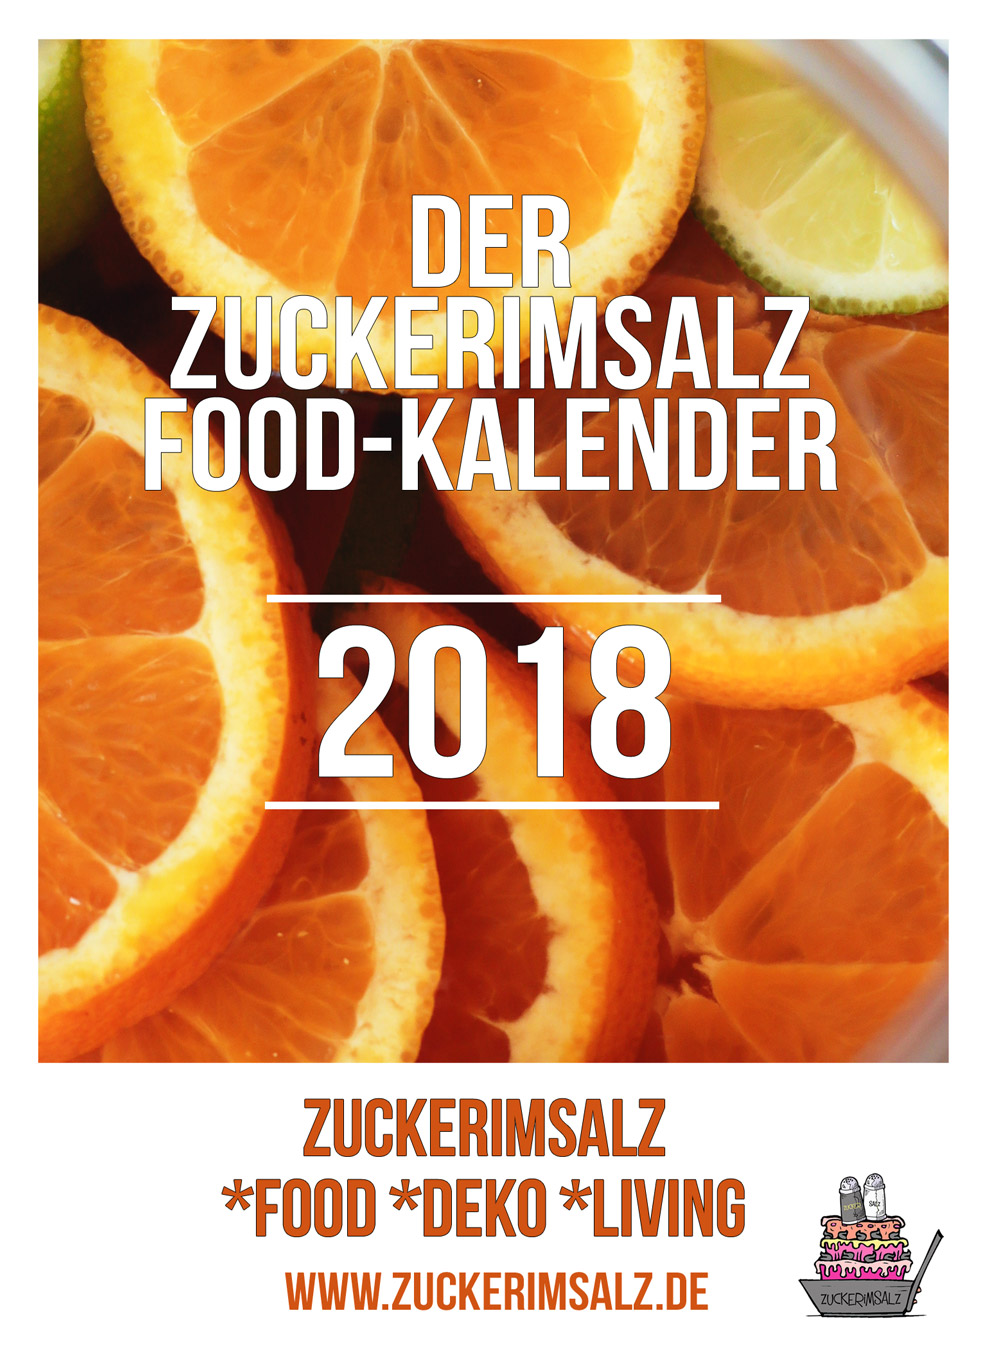 Der Food Kalender 2018 made by Zuckerimsalz